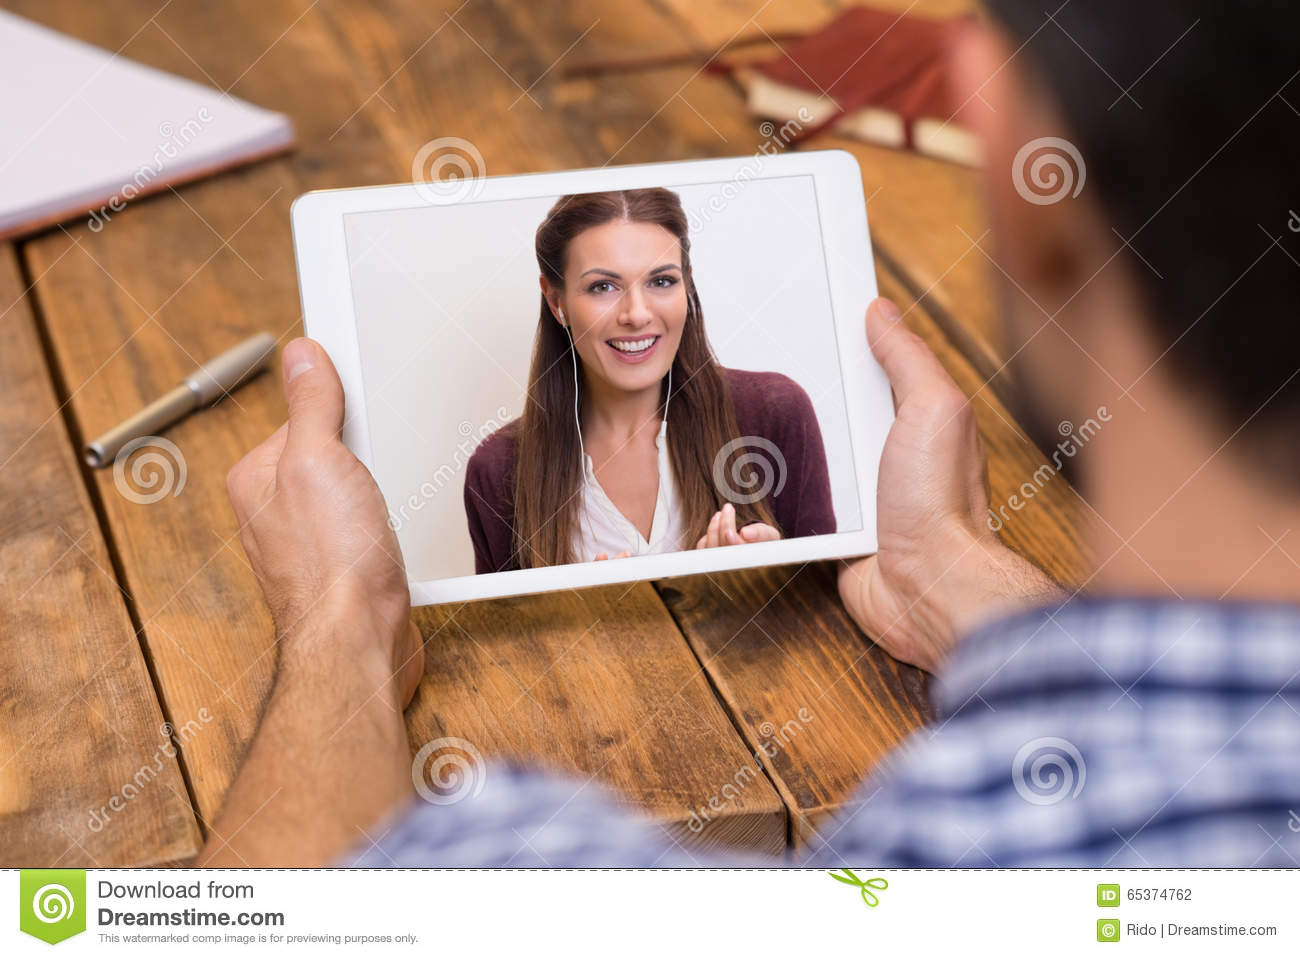 video chat with women